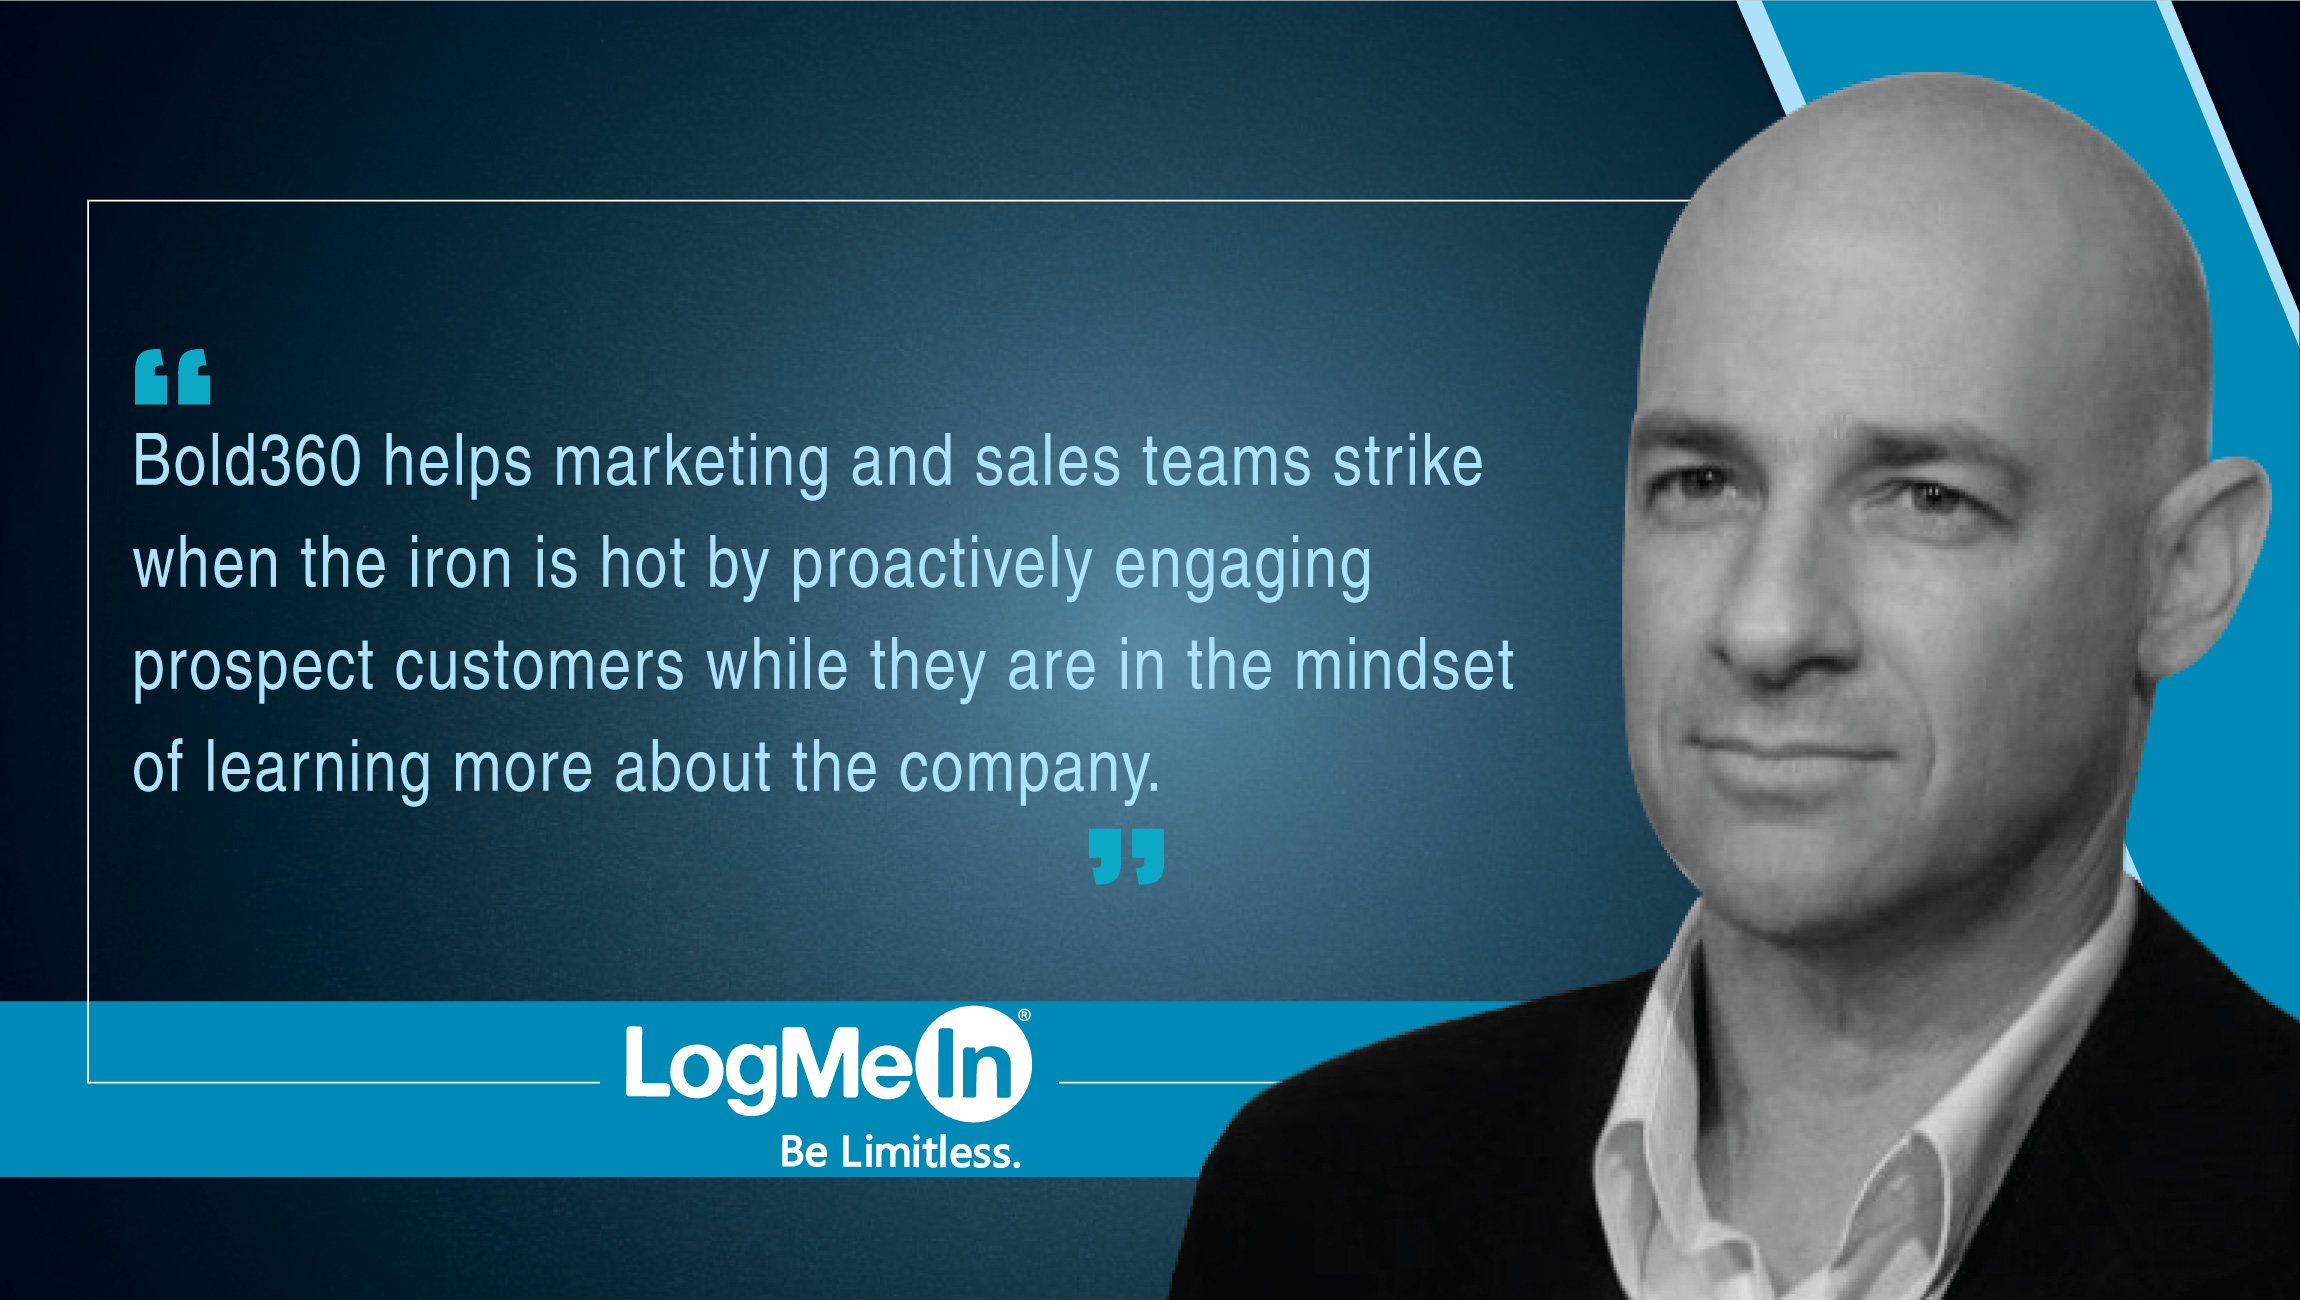 Yaniv Reznik, Head of Customer Engagement Products, LogMeIn